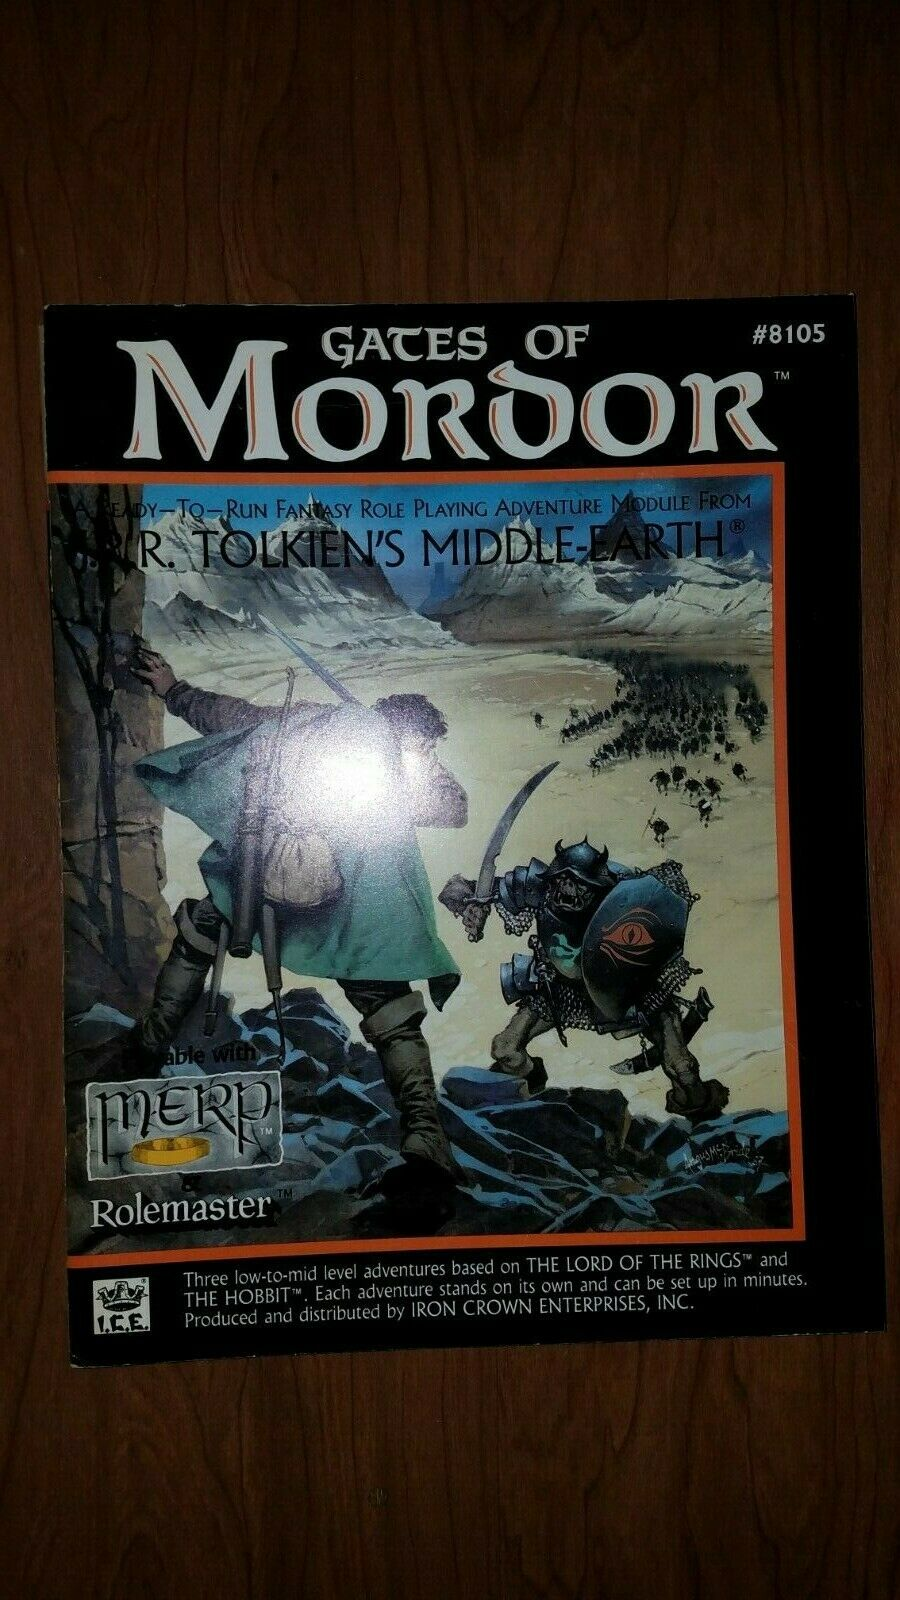 ICE  Middle-Earth Role Playing Rolemaster Module - GATES OF MORDOR